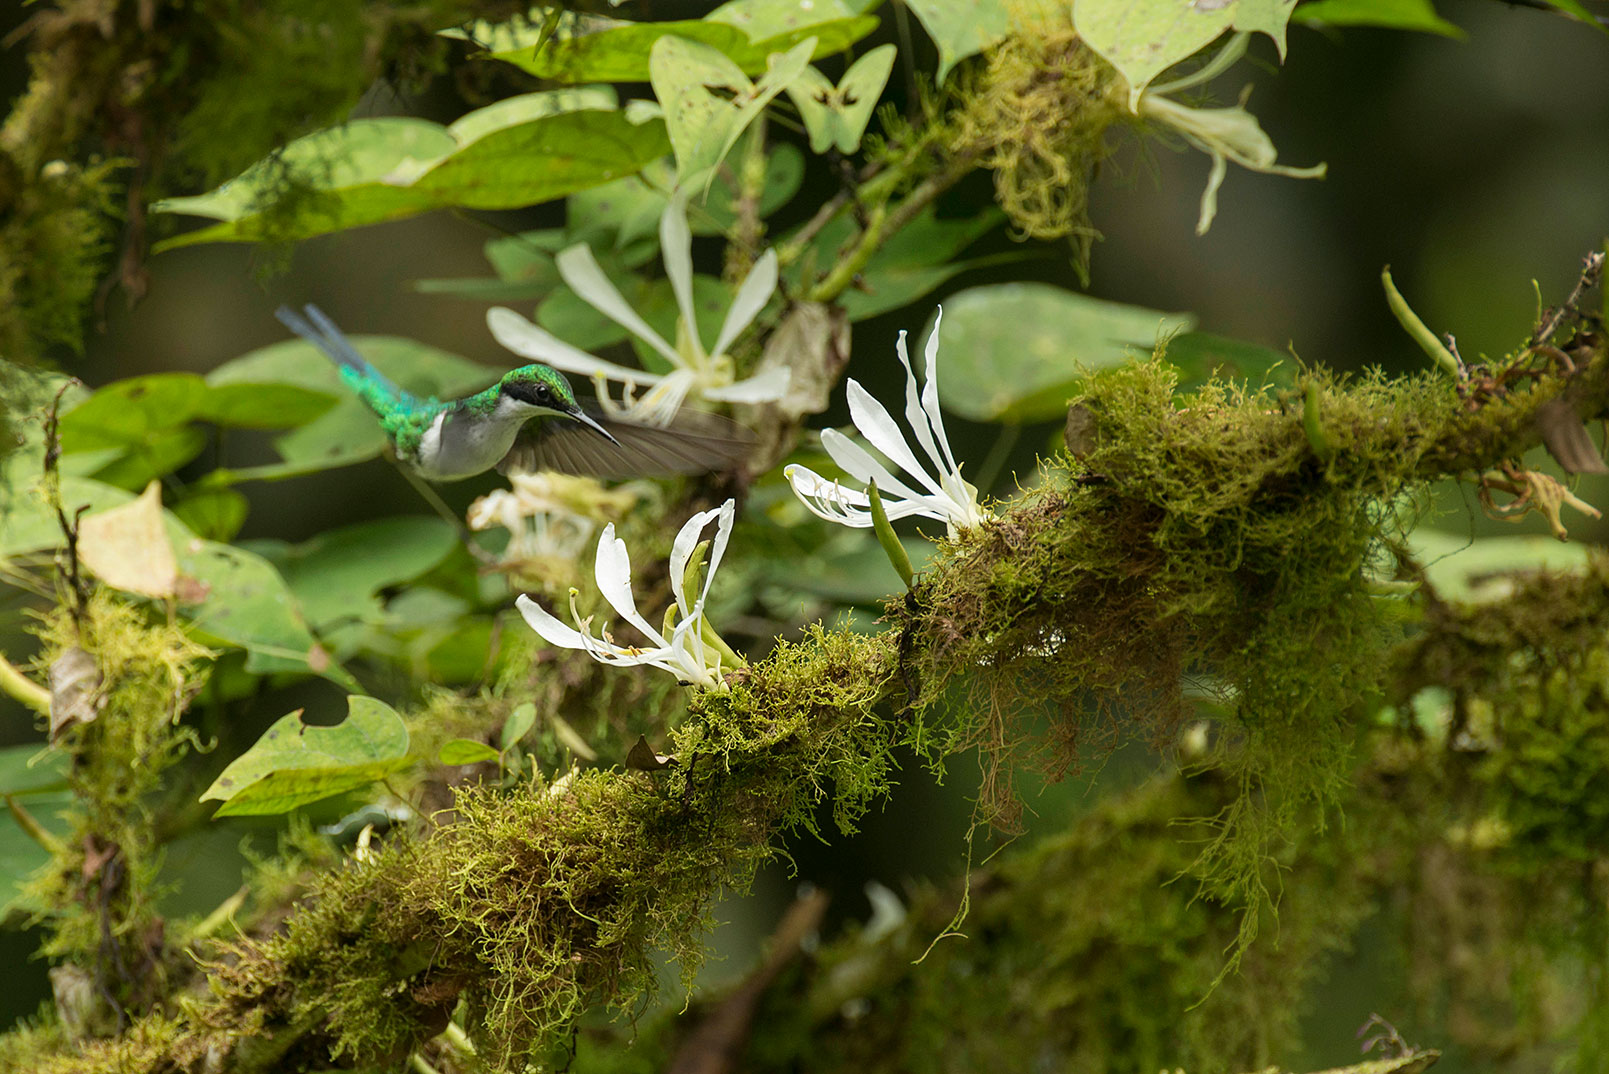 A florescent green hummingbird approaches white flowers growing on mossy branches